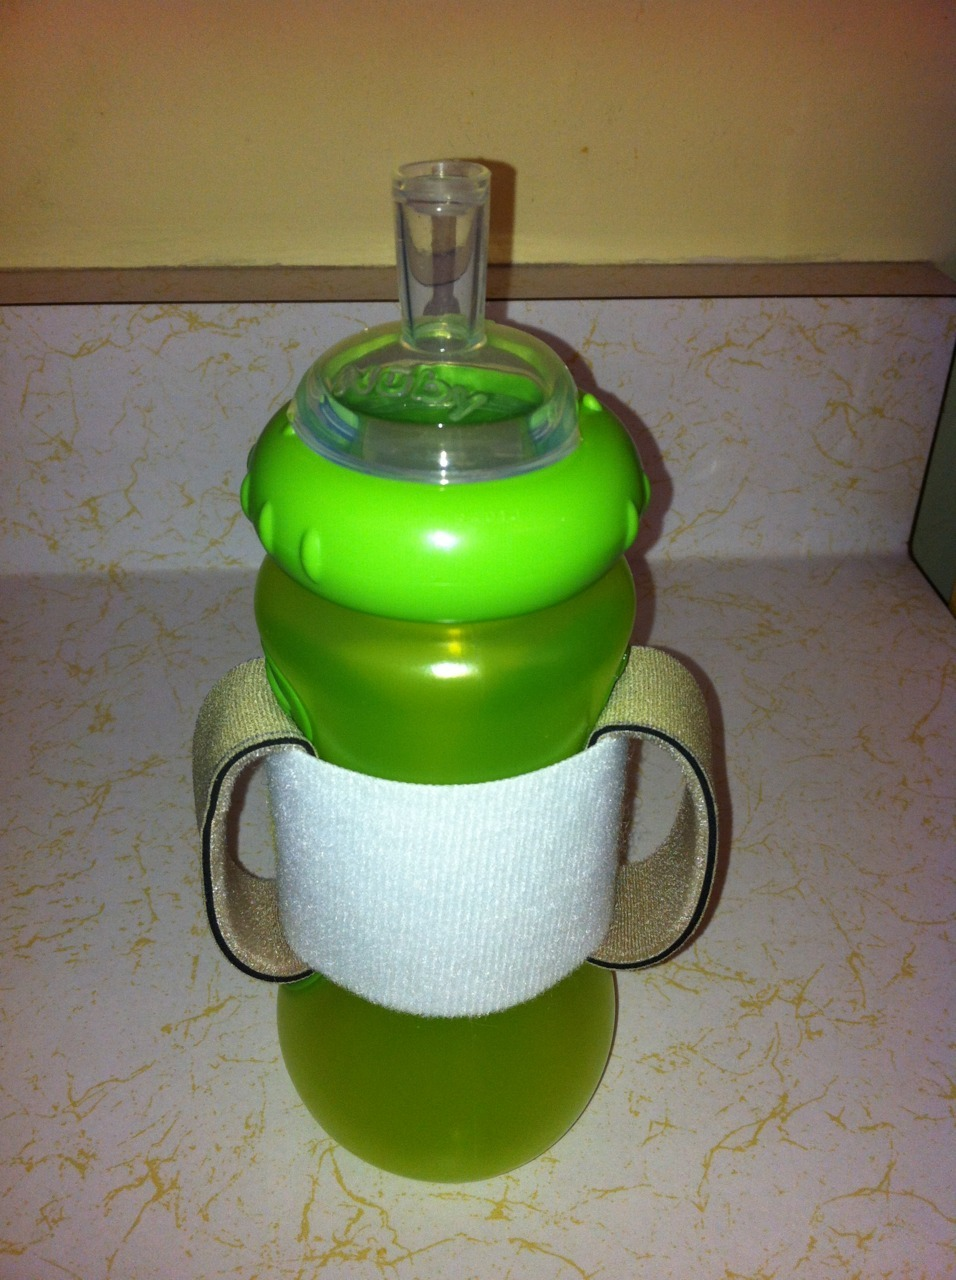 "This is an adaptive handle that I made to put on a sippy cup, in order to facilitate holding the cup or working on bringing cup to mouth. I used Velcro Easystrap around the base, as it is easily adjustable and could be used on various sized cups. The ""handles"" are made of Neoloop, which is essentially a neoprene material. It has a stretch to it, which allows the hands to slide in and remain secure against the cup. None of it is sewn together to allow adjustability."